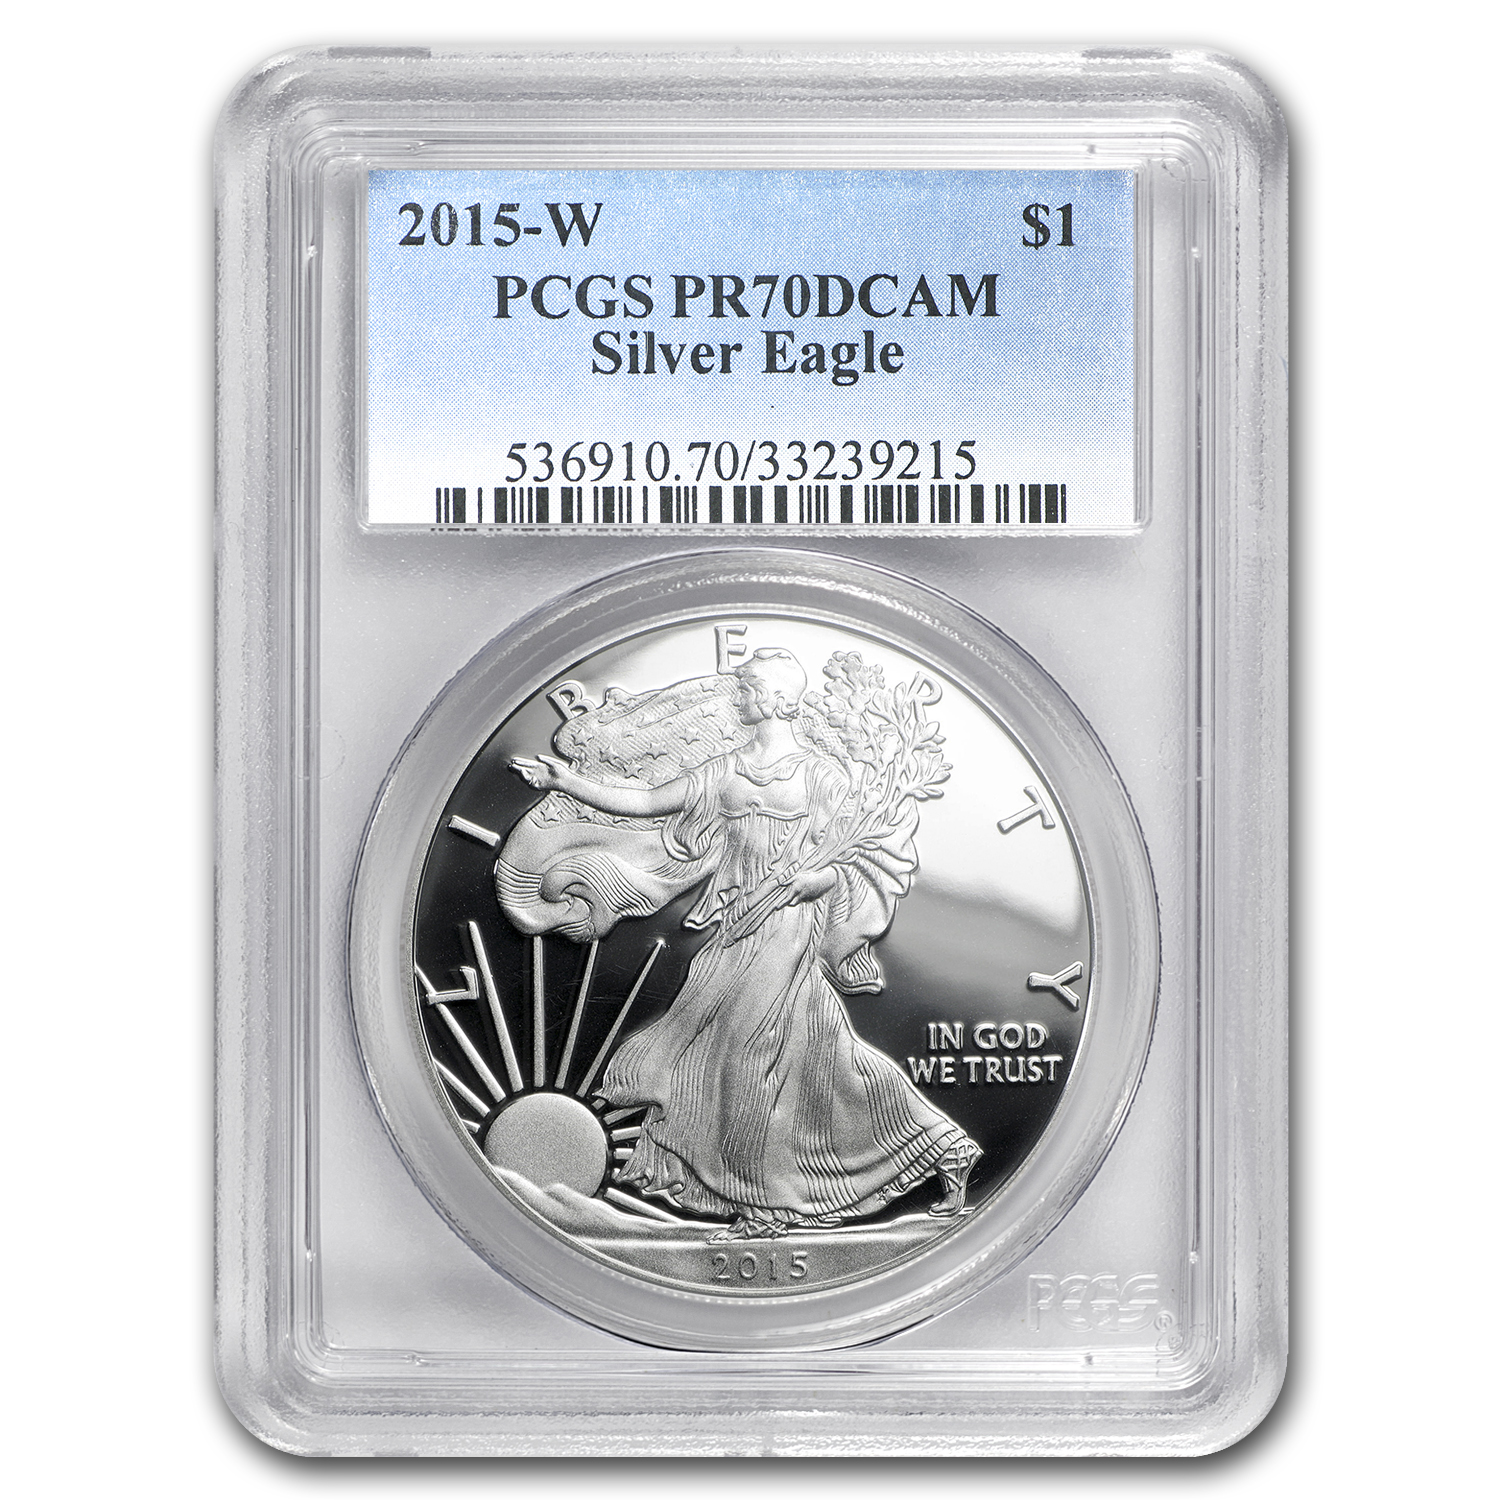 2015-W Proof Silver American Eagle PR-70 PCGS